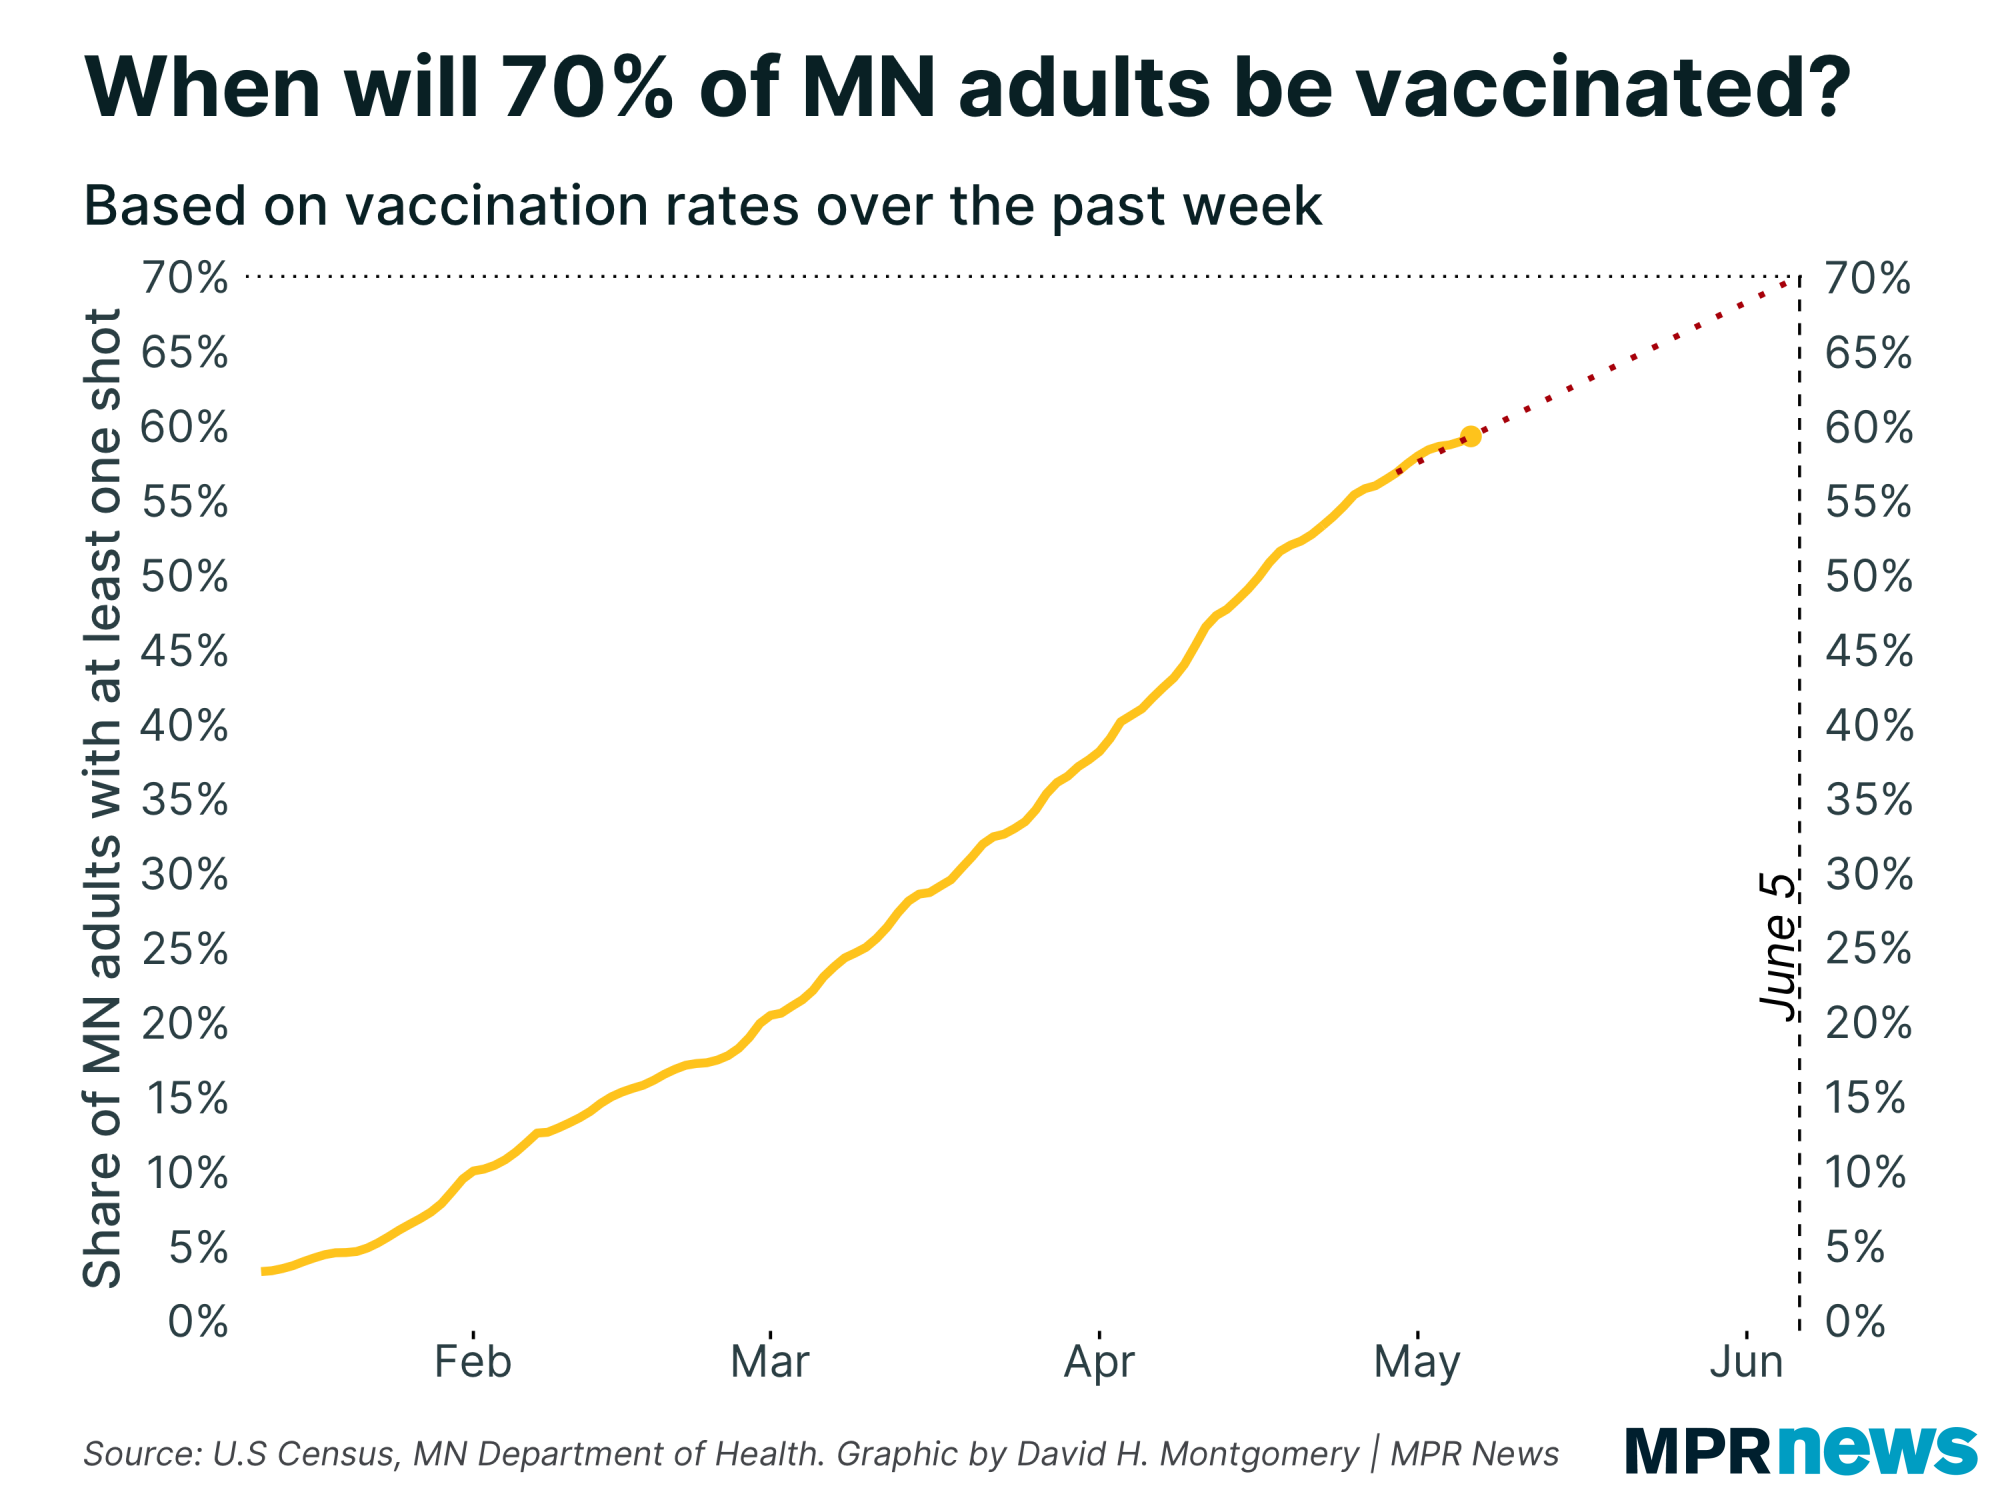 When will 70% of Minnesota adults be vaccinated?